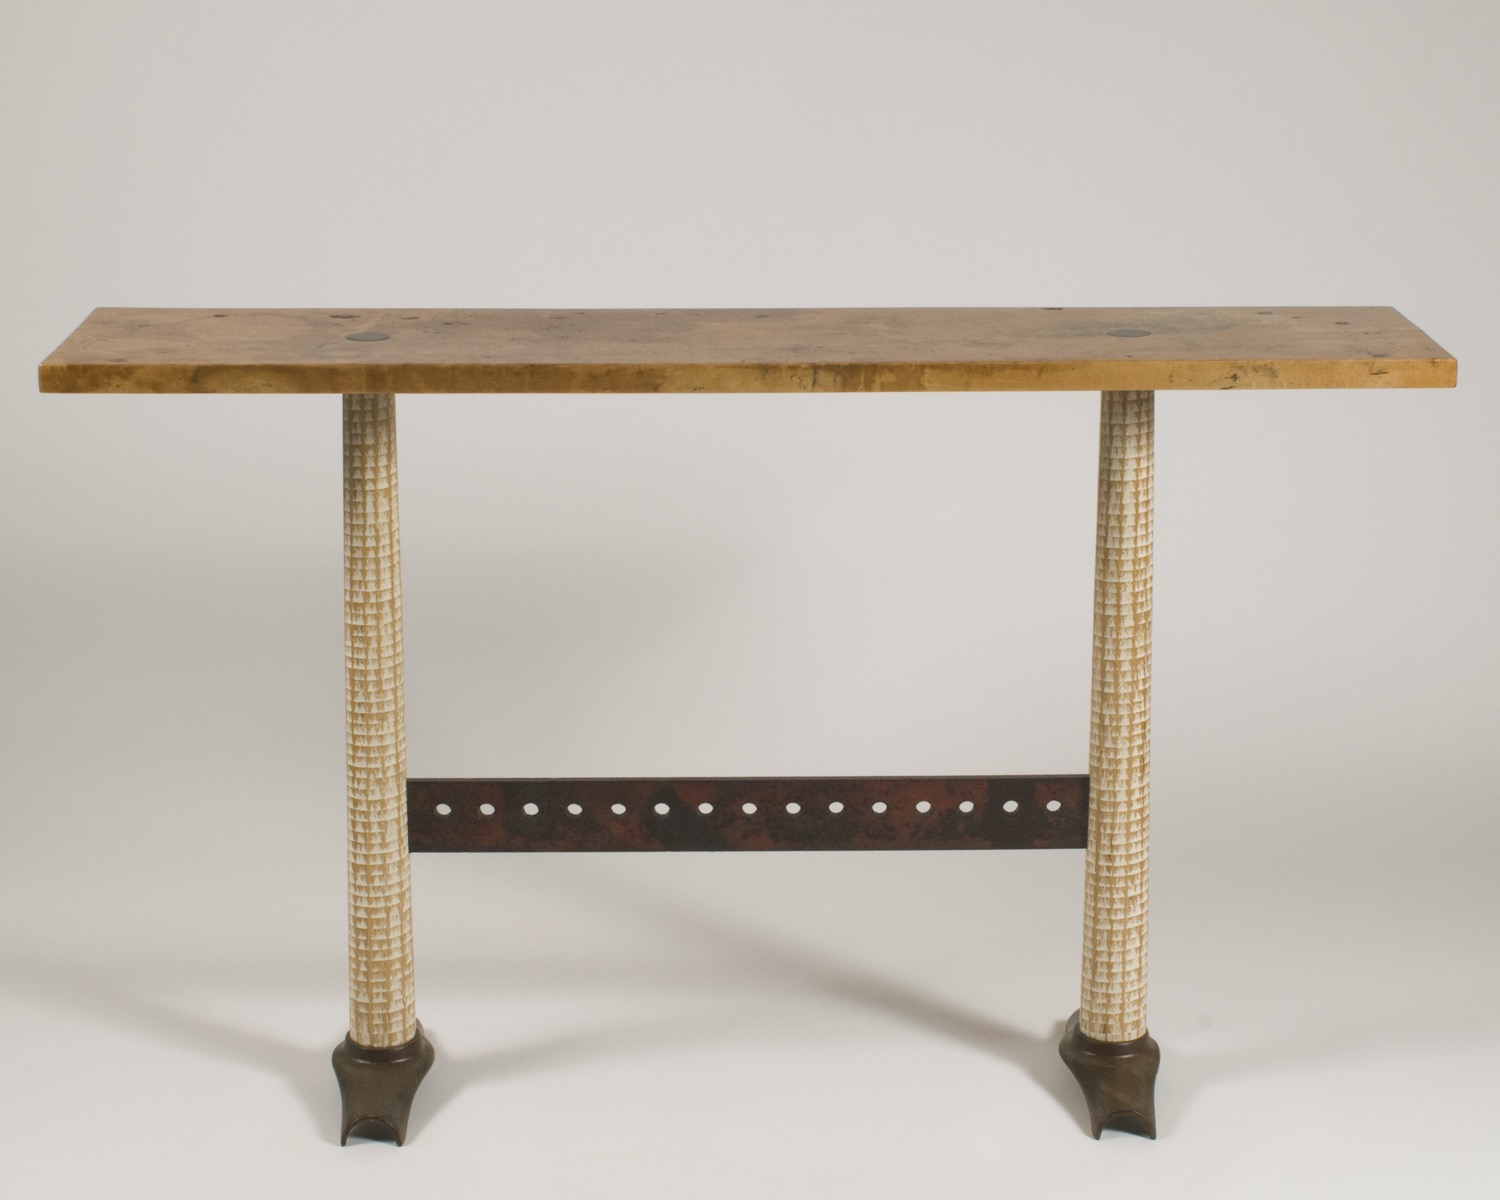 side-table-work-bench-001.jpg